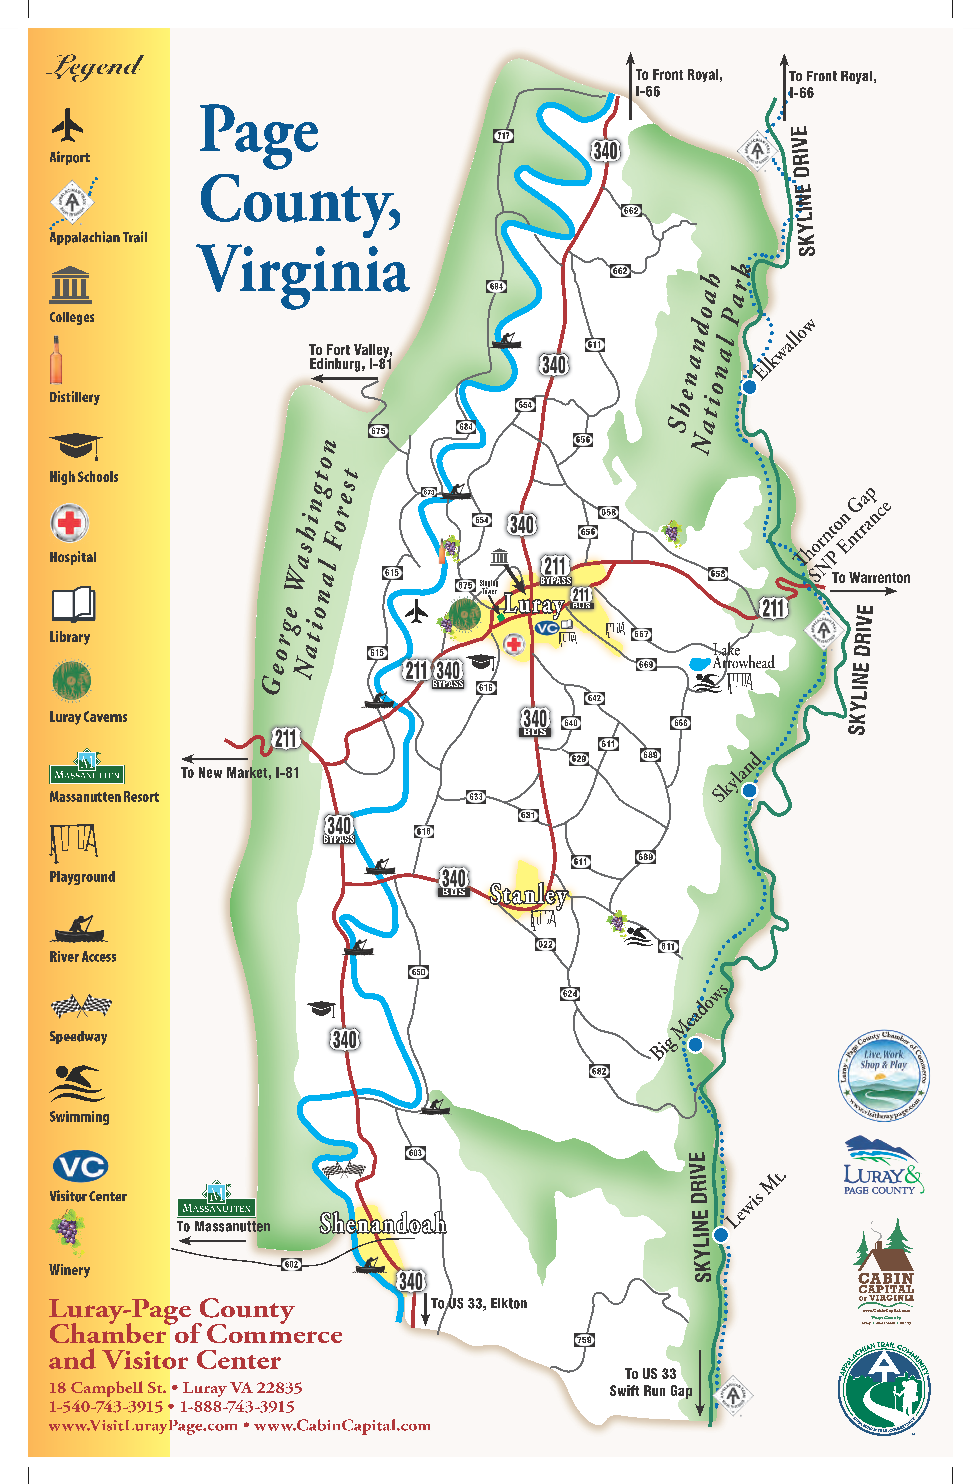 Maps Of Luray And Page County For Your Exploring Luray Page - Free-us-maps-by-mail